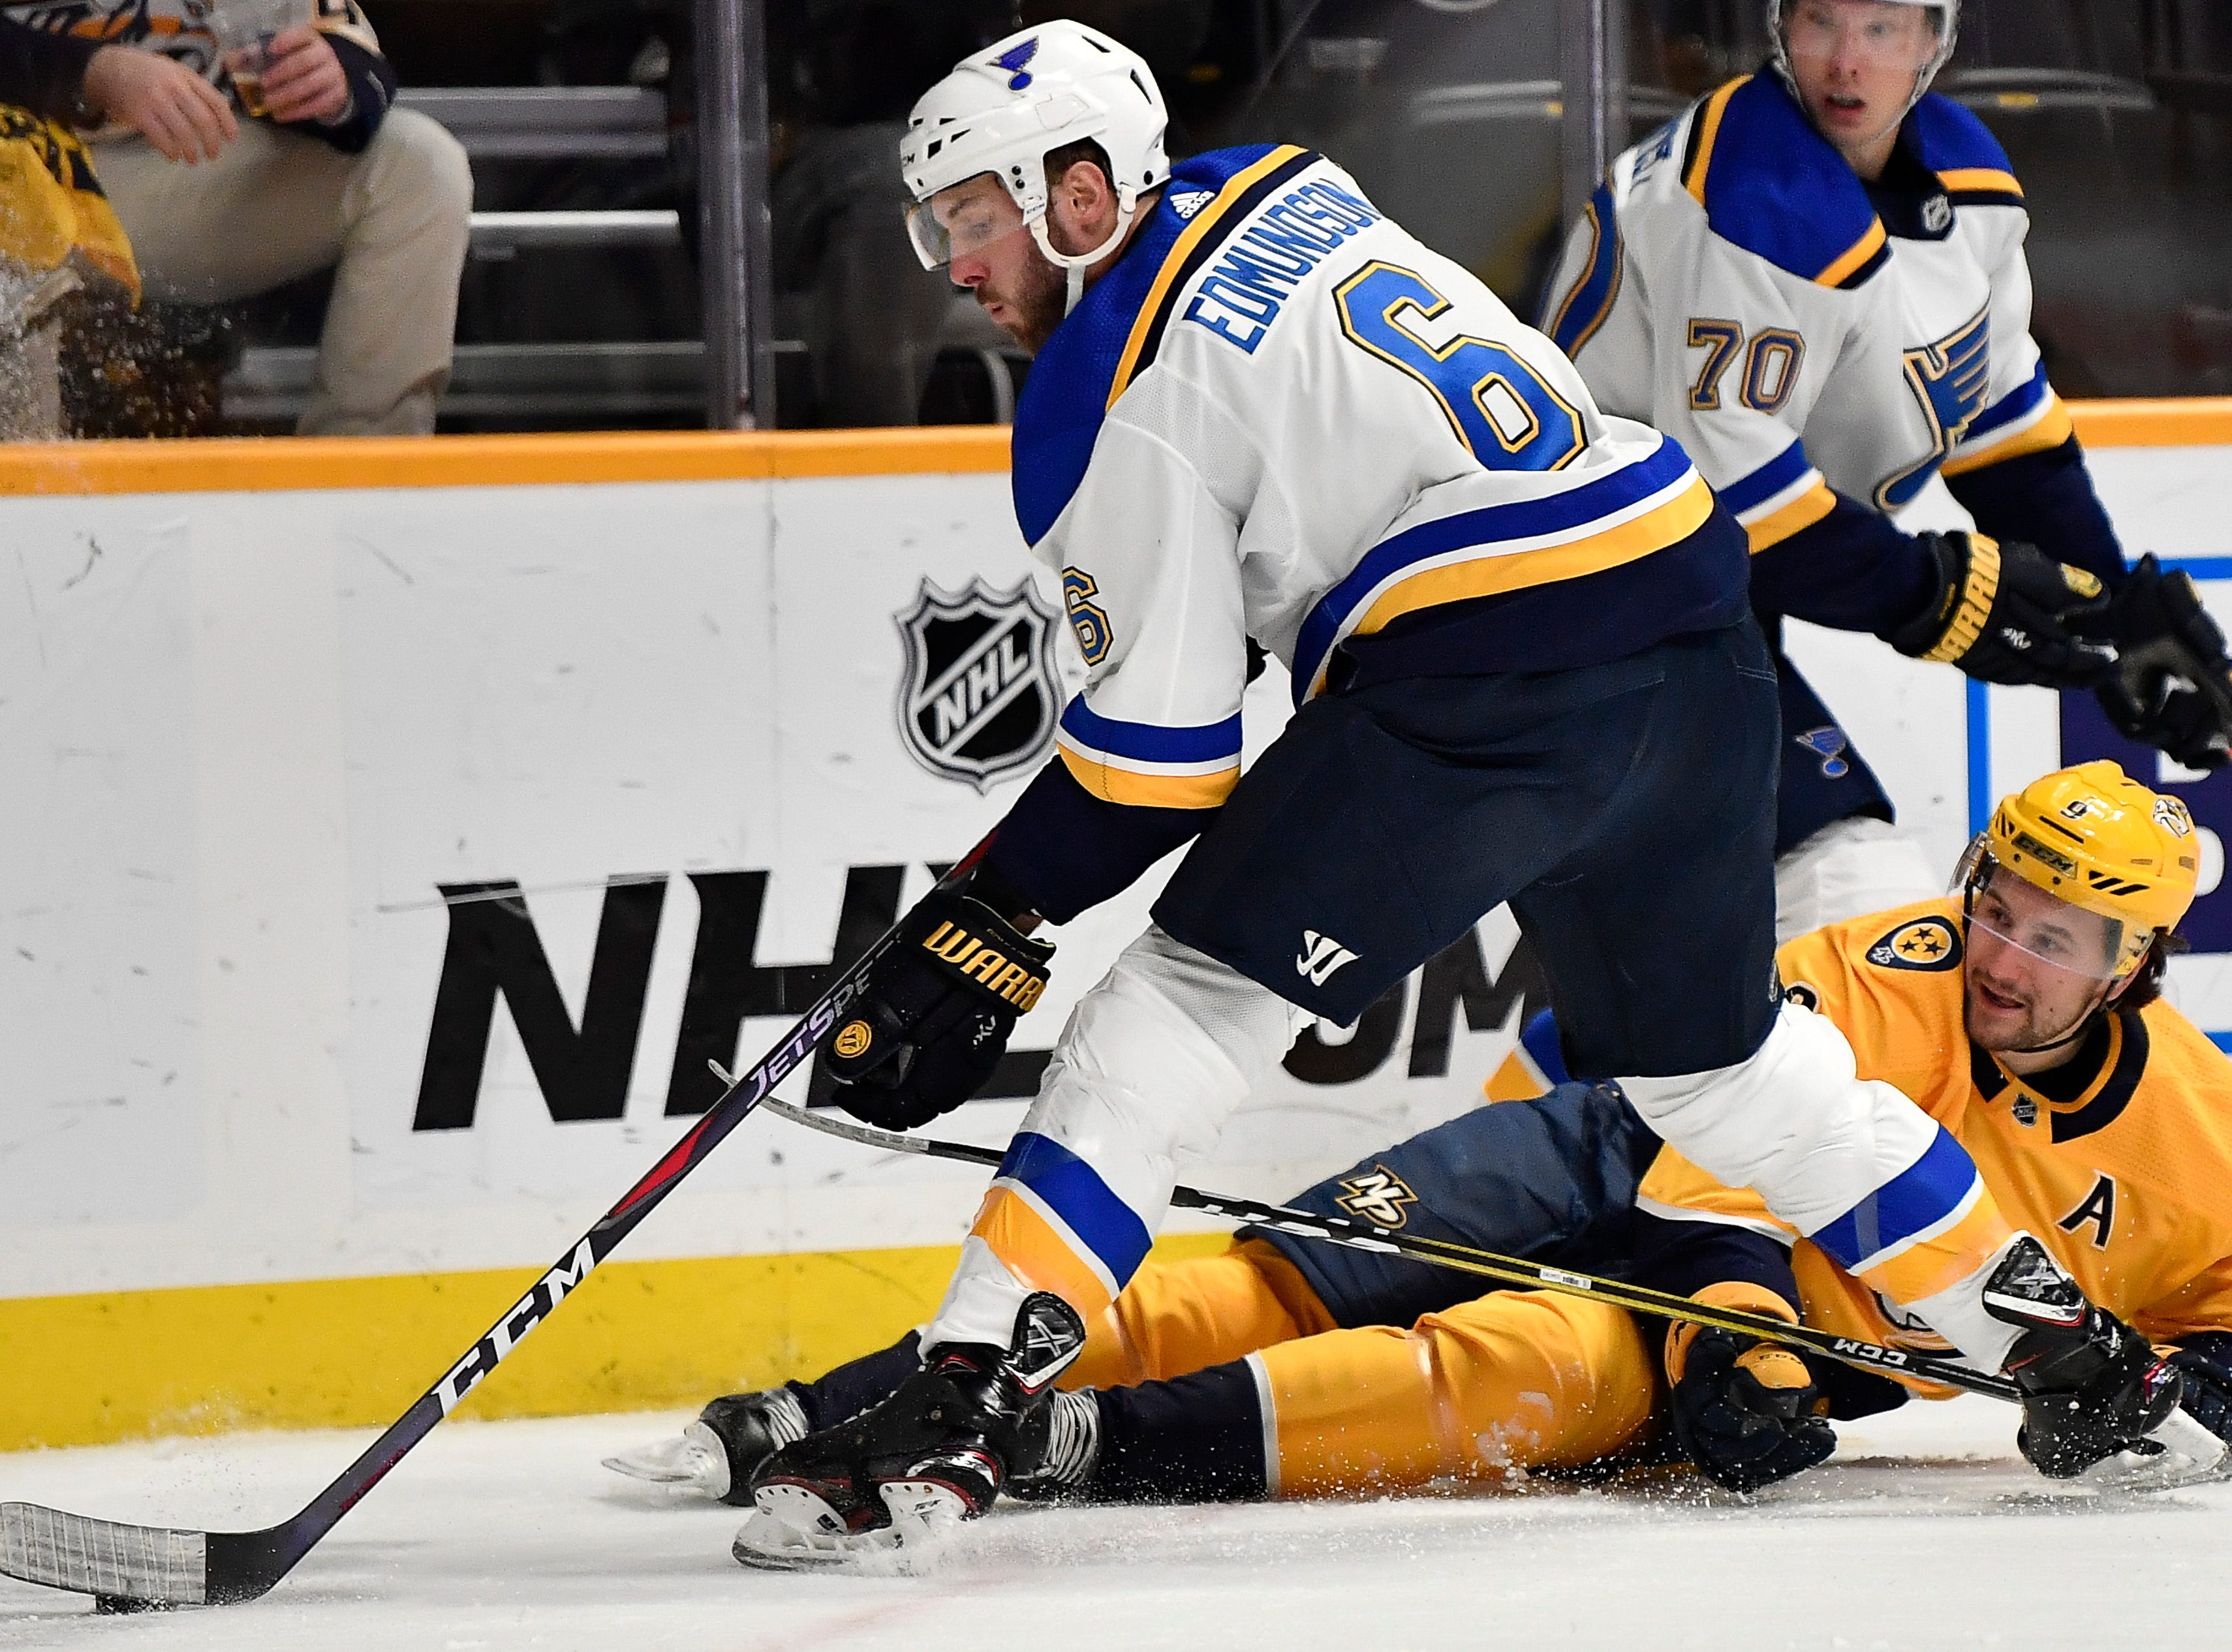 Predators left wing Filip Forsberg (9) tries to get the puck from Blues defenseman Joel Edmundson (6) during the first period at Bridgestone Arena Sunday Feb. 10, 2019 in Nashville, Tenn.